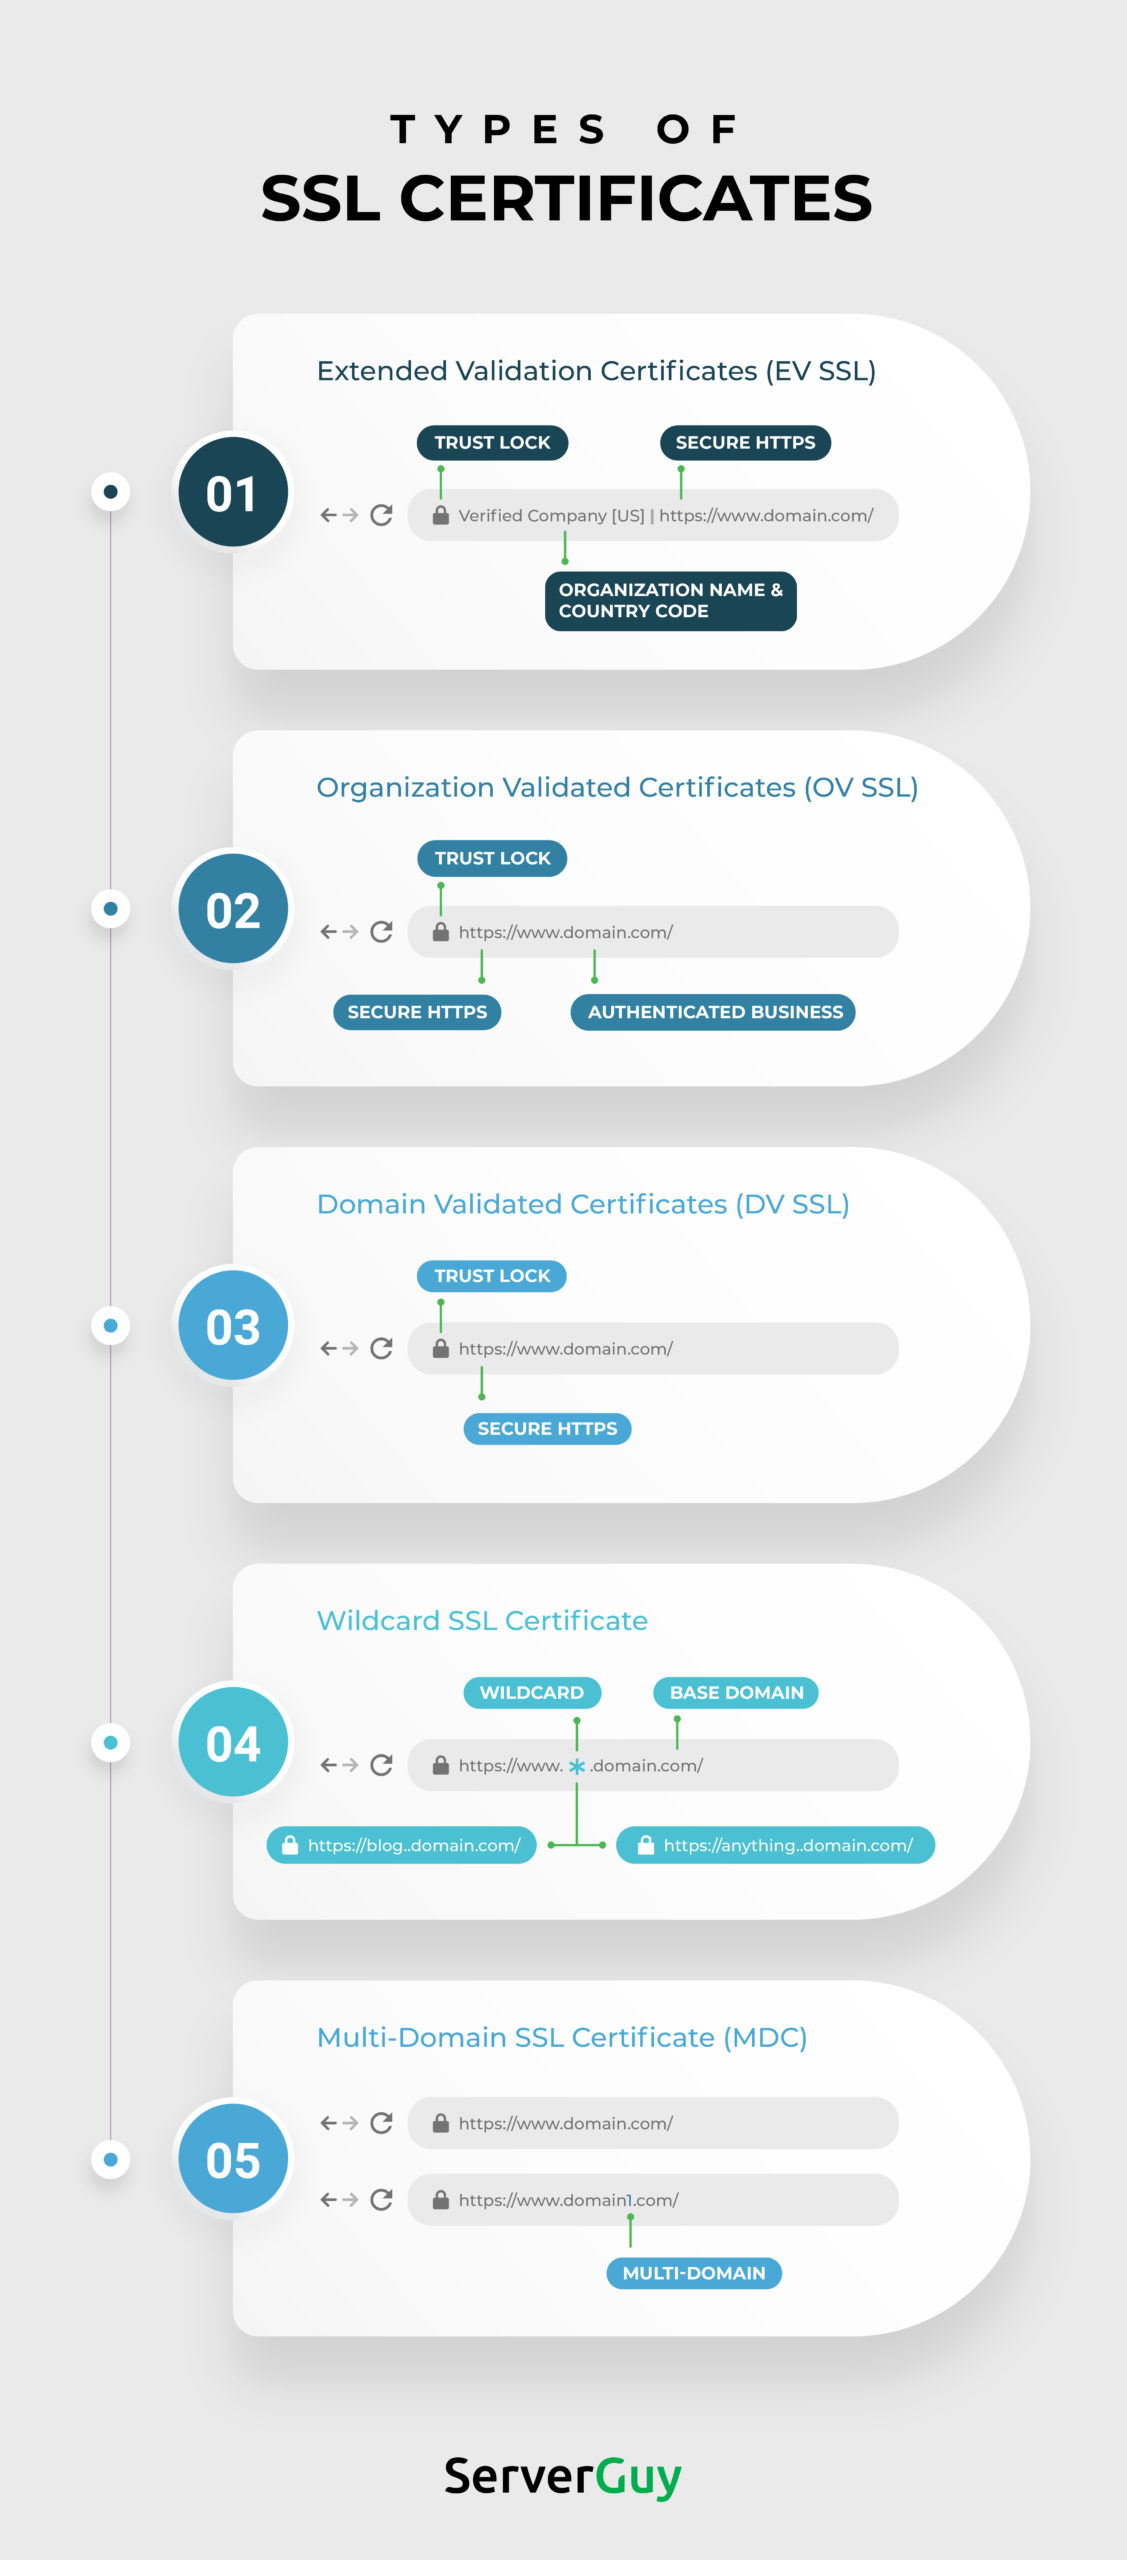 Types of SSL Certificates infographic